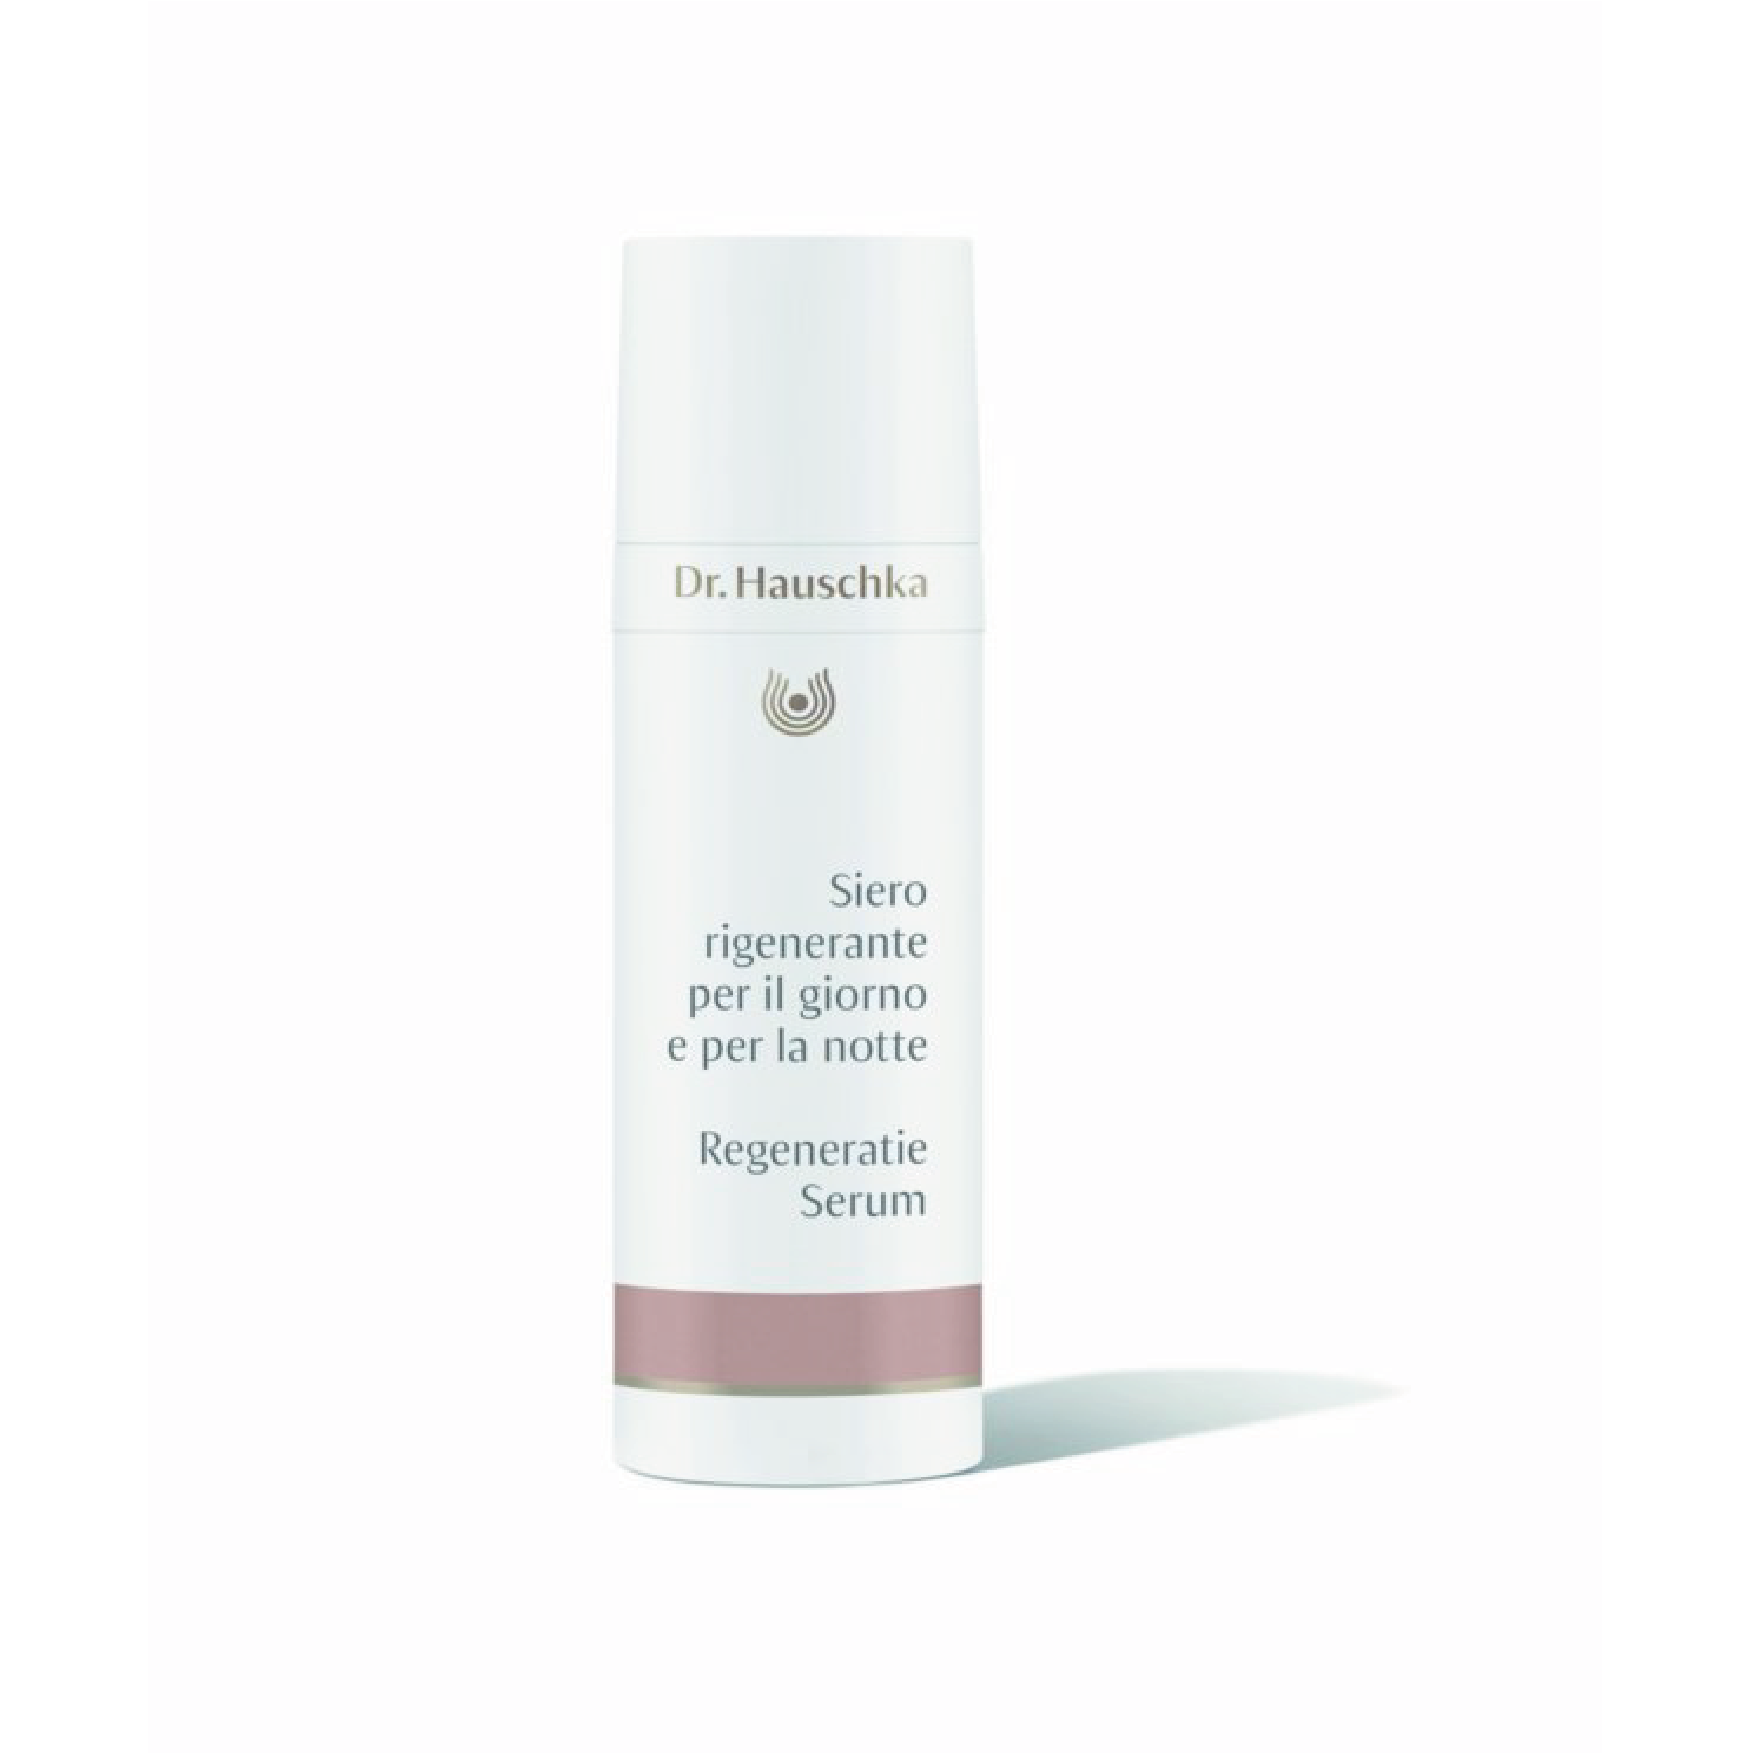 Regeneratie Serum 30ml